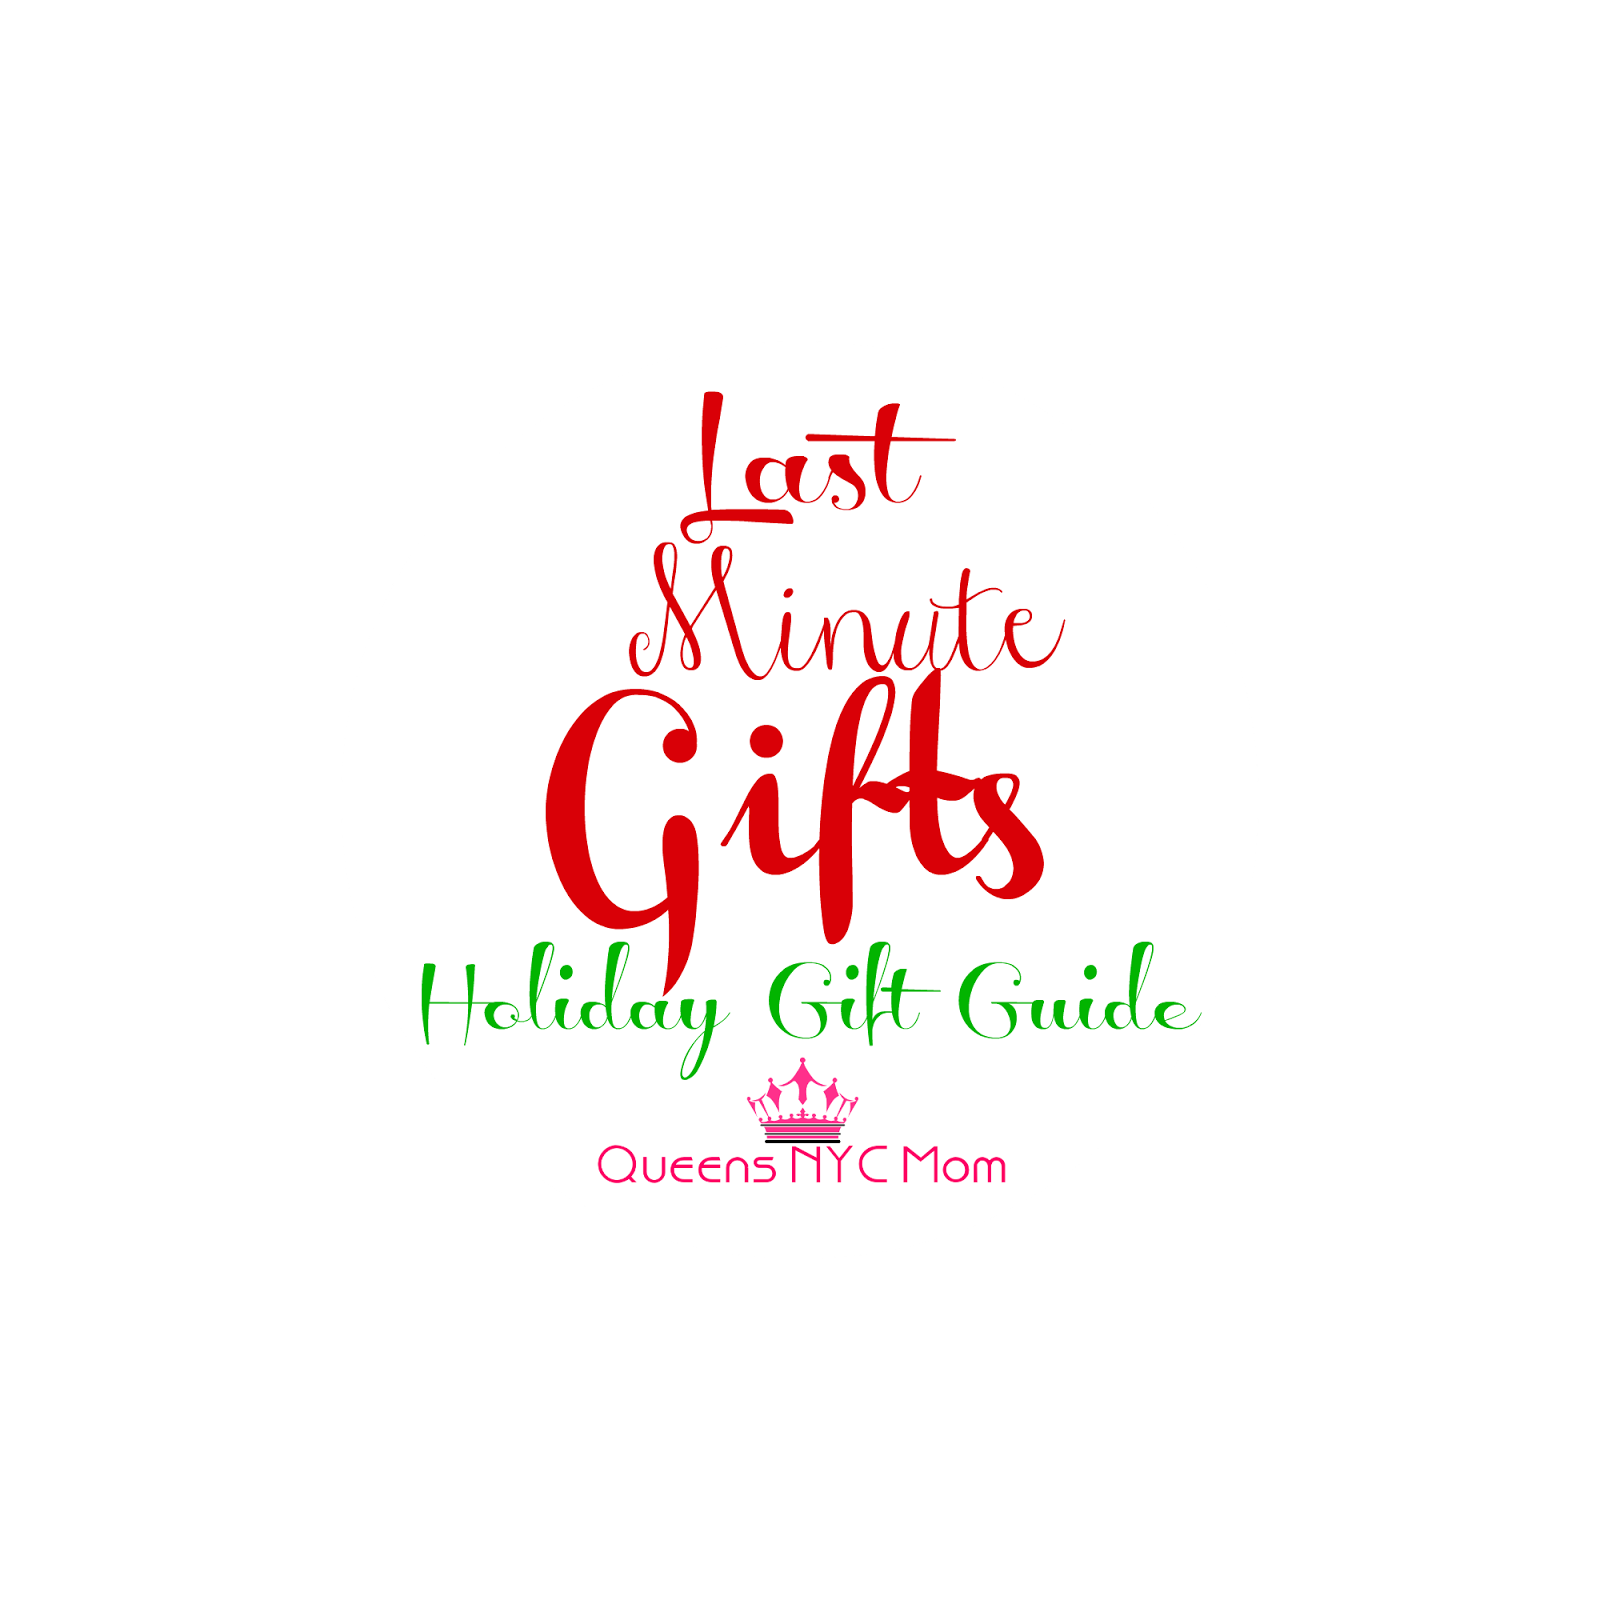 Last minute gifts holiday gift guide hgg queensnycmom for Week end last minute